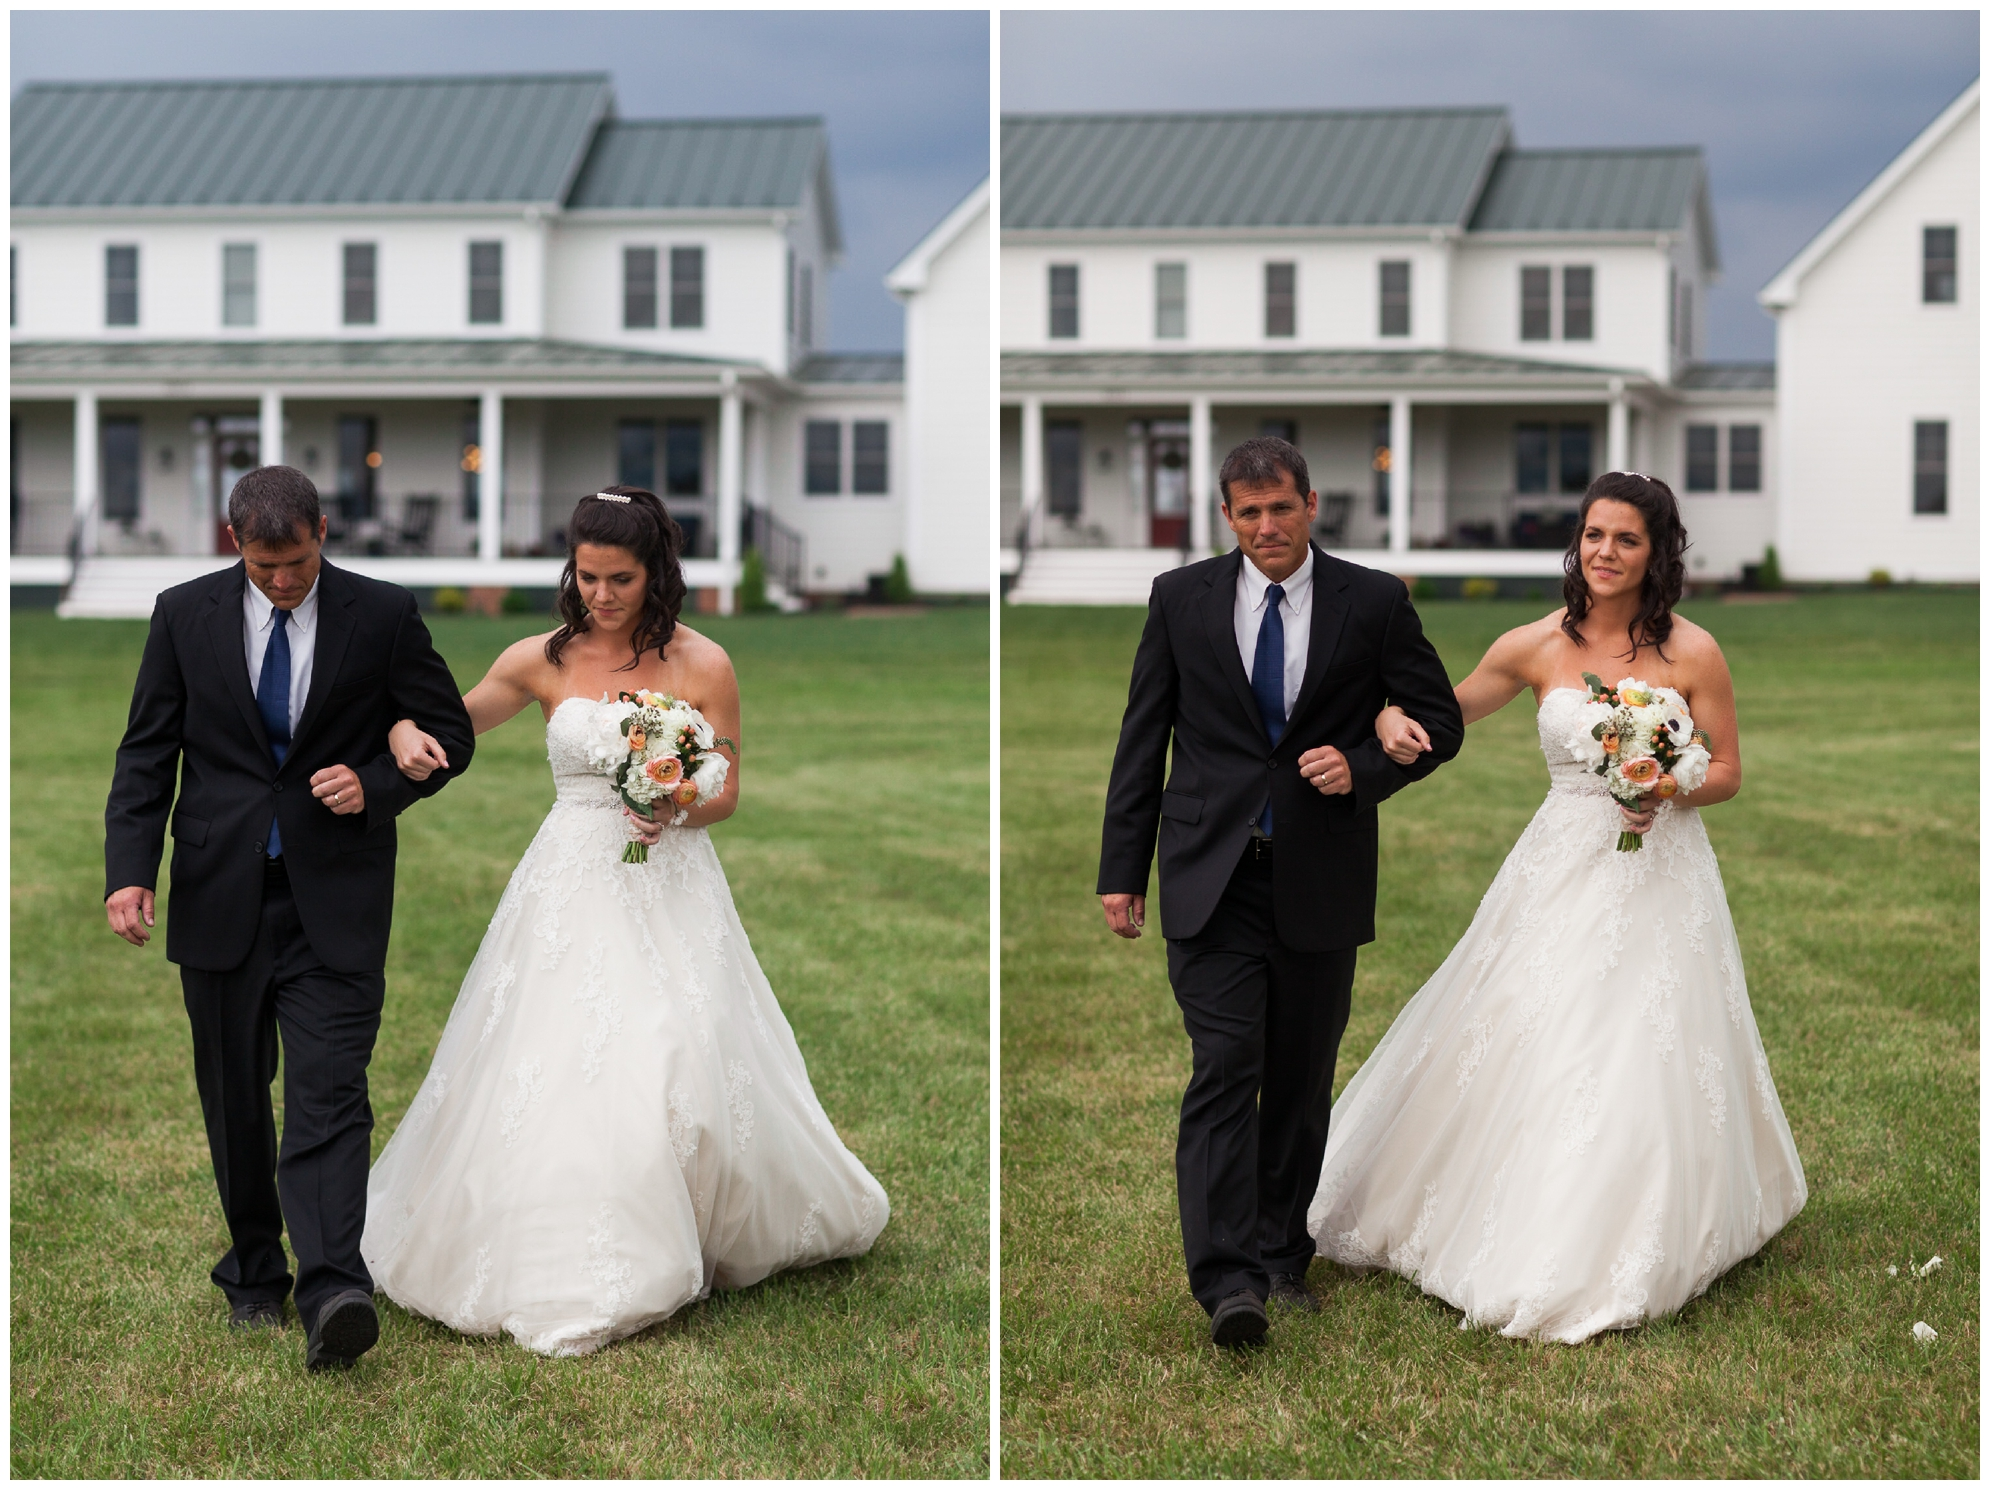 Mountaintop wedding in late spring in the Shenandoah Valley Blue Ridge Mountains.